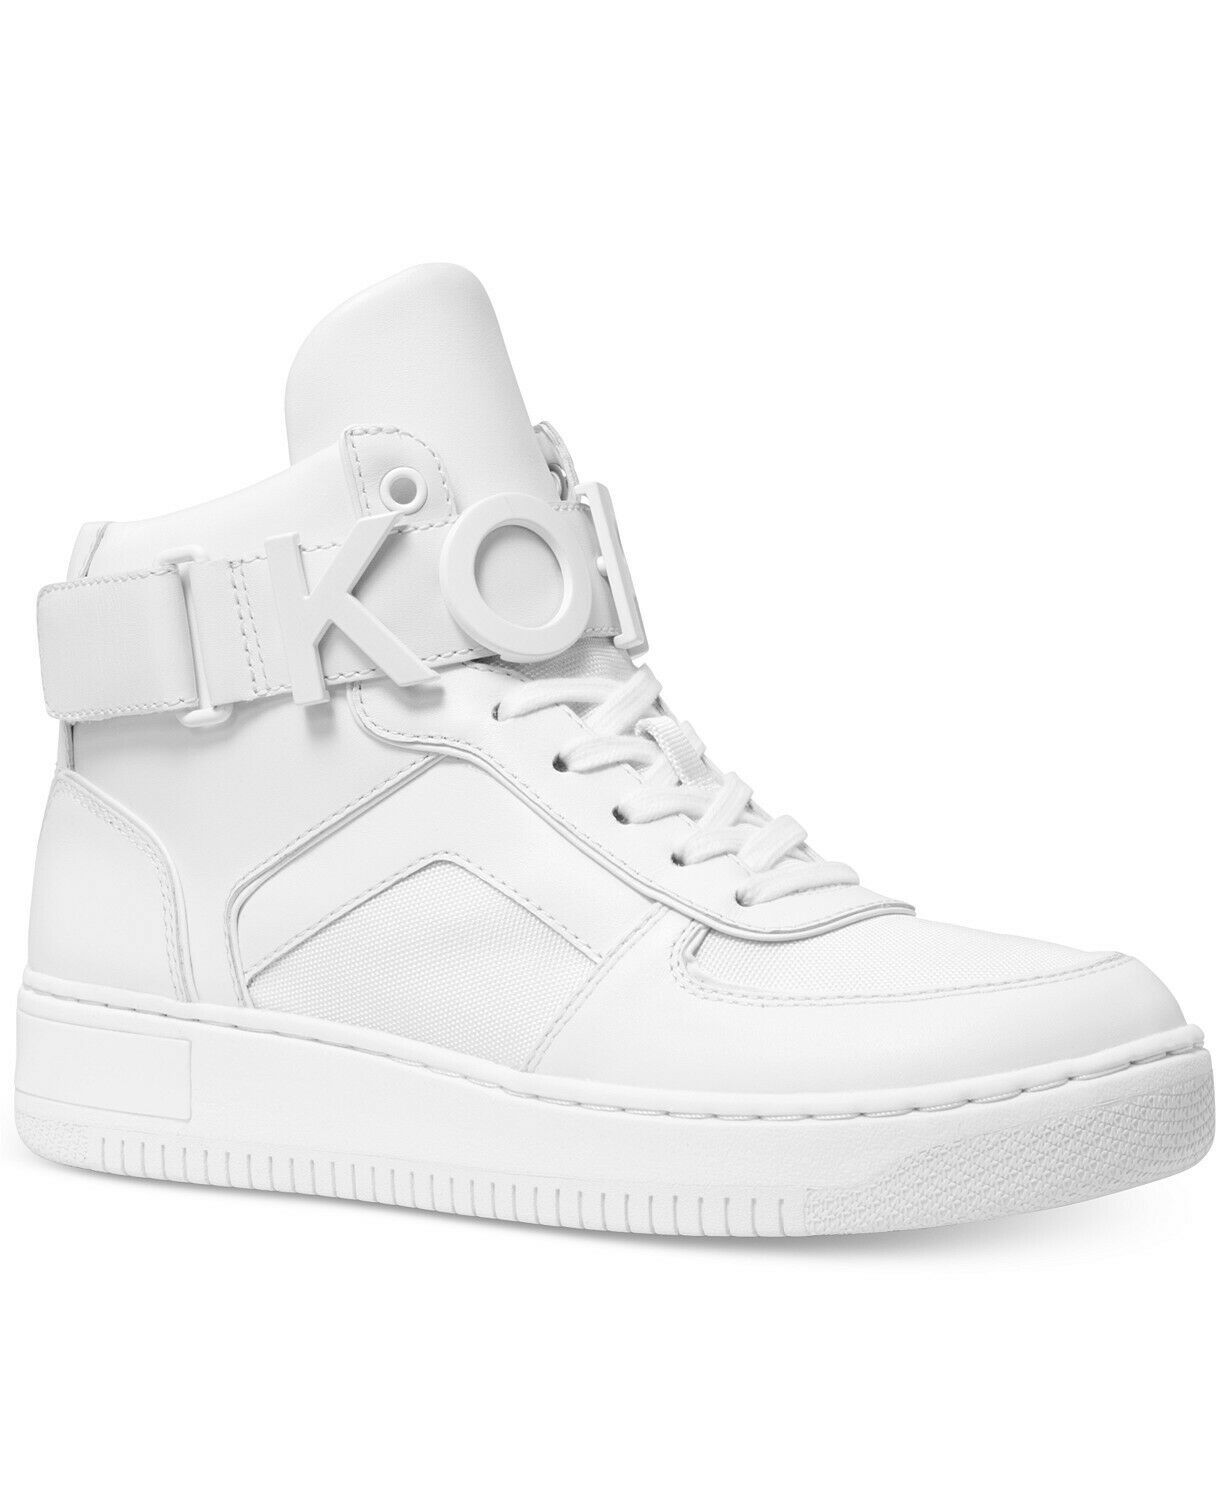 Michael Kors MK Women's Cortlandt High Top Leather Sneakers Shoes White